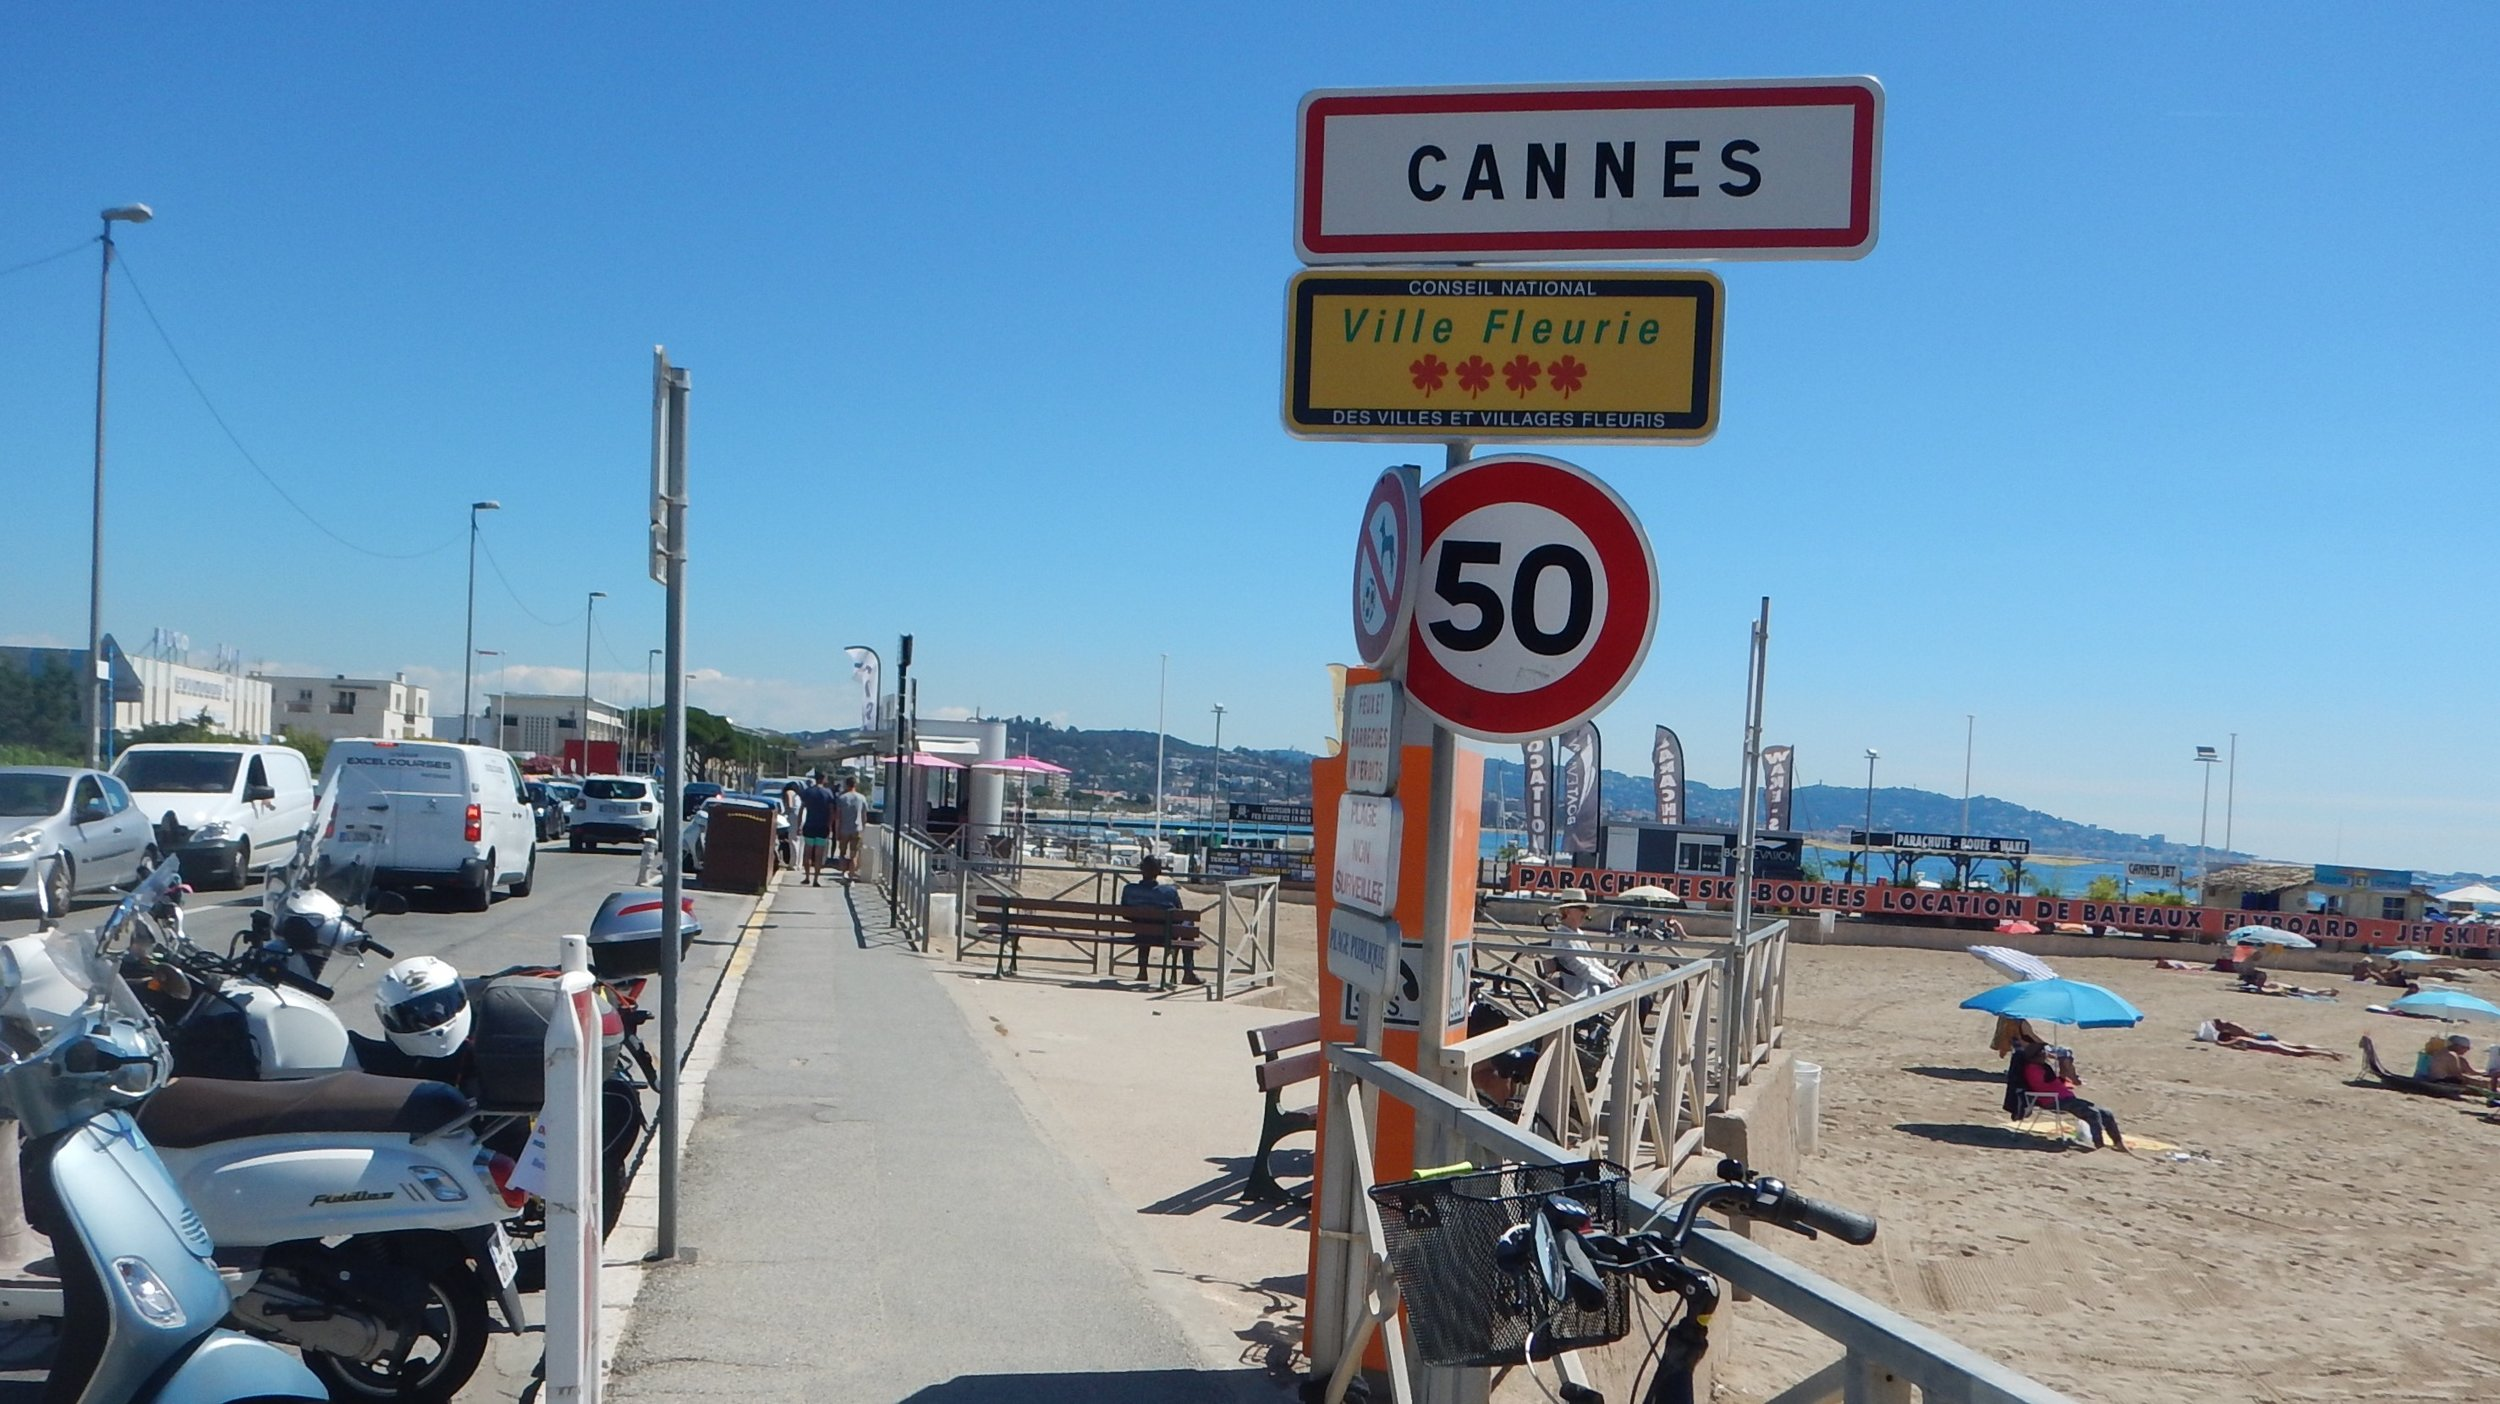 riding north- east along the coast I come to Cannes, convenient moto parking.